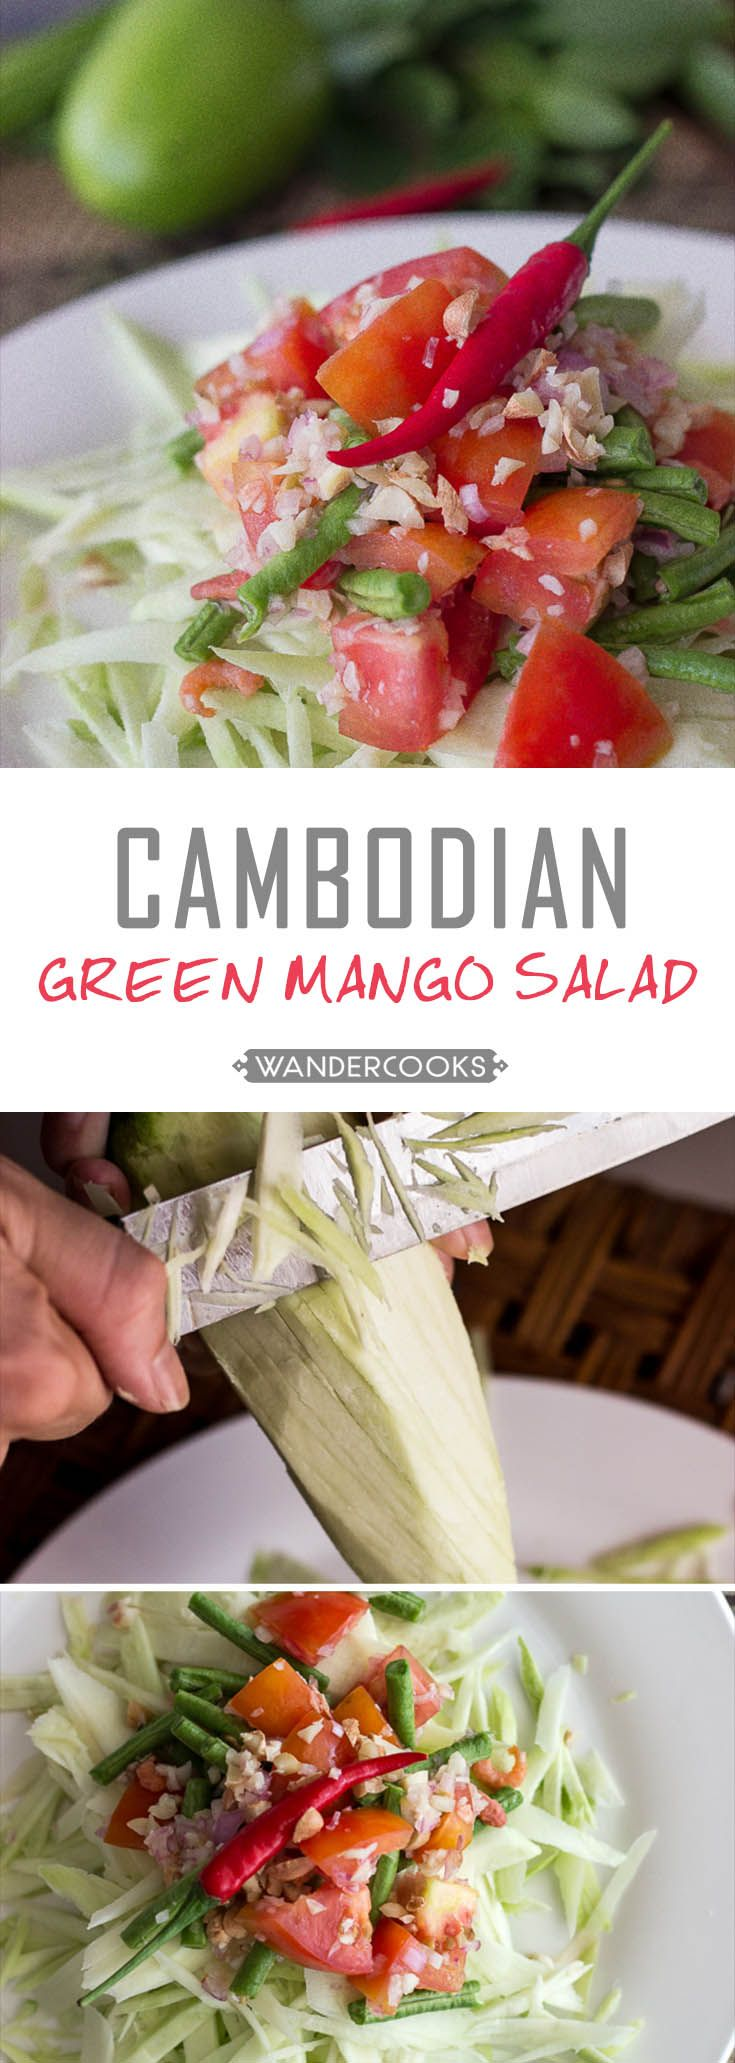 Cambodian Green Mango Salad is crunchy, healthy and smothered in natural zesty flavour. Plus it's SUPER easy to make. So what makes it so good?